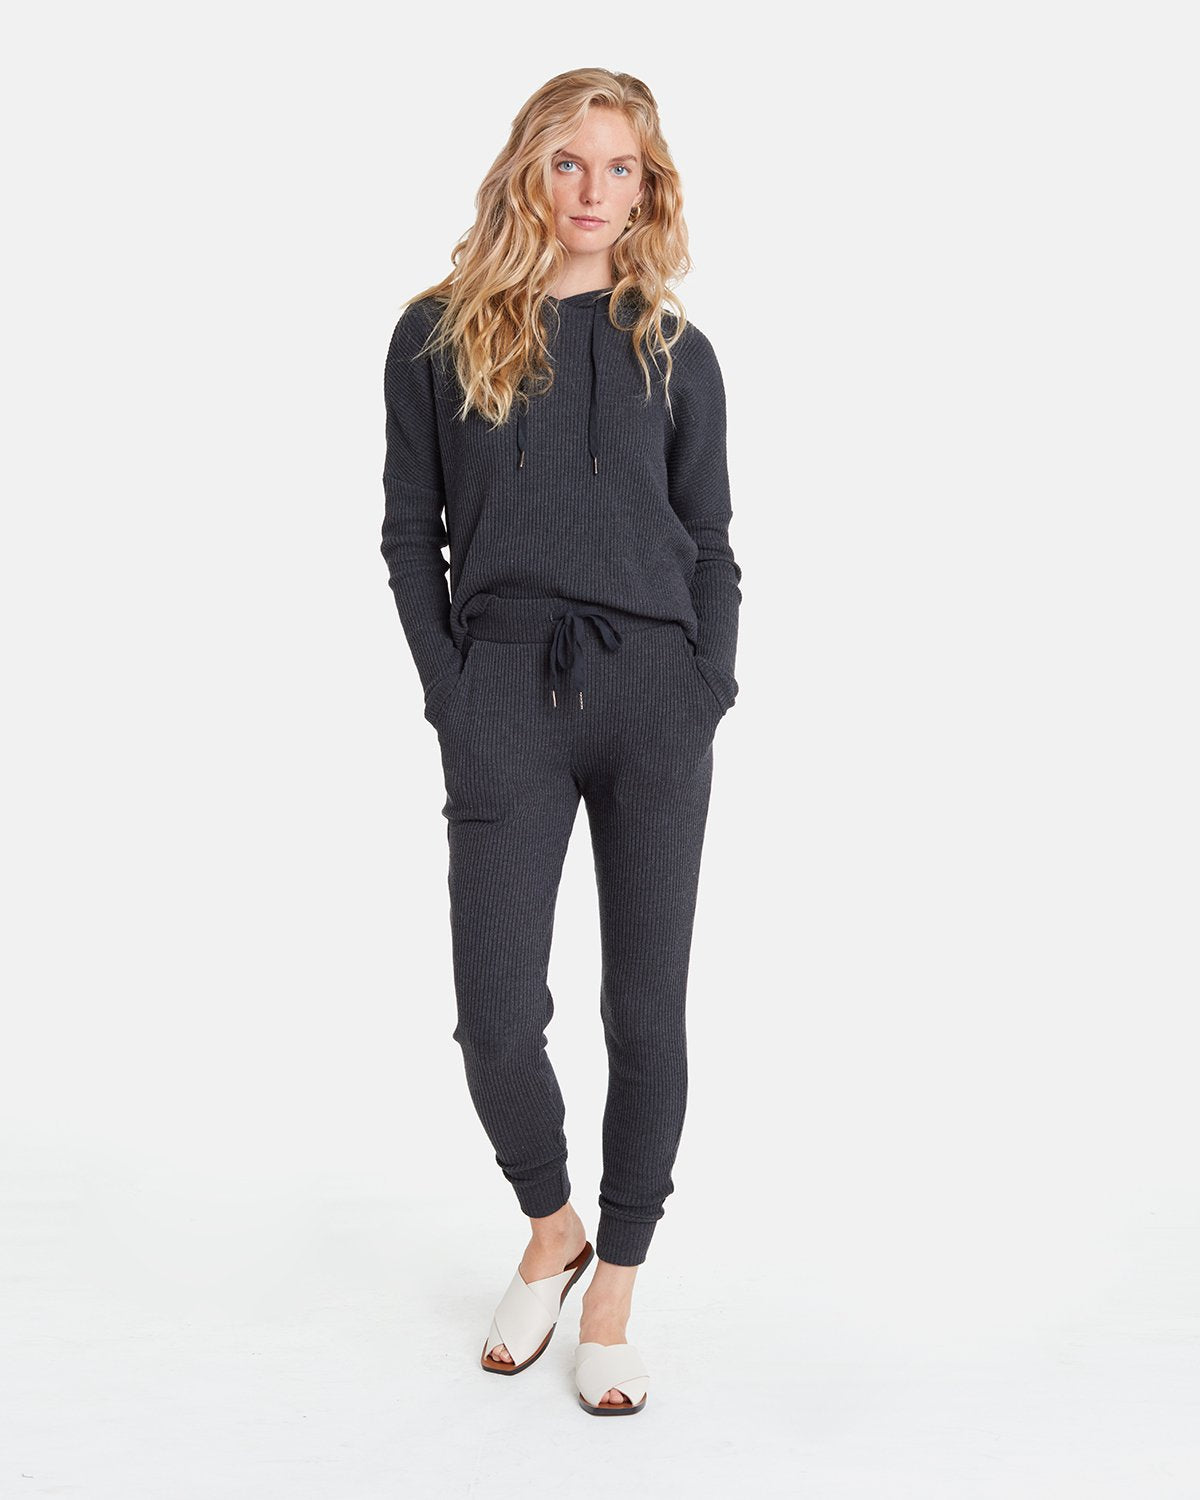 Amsterdam Pant - Charcoal